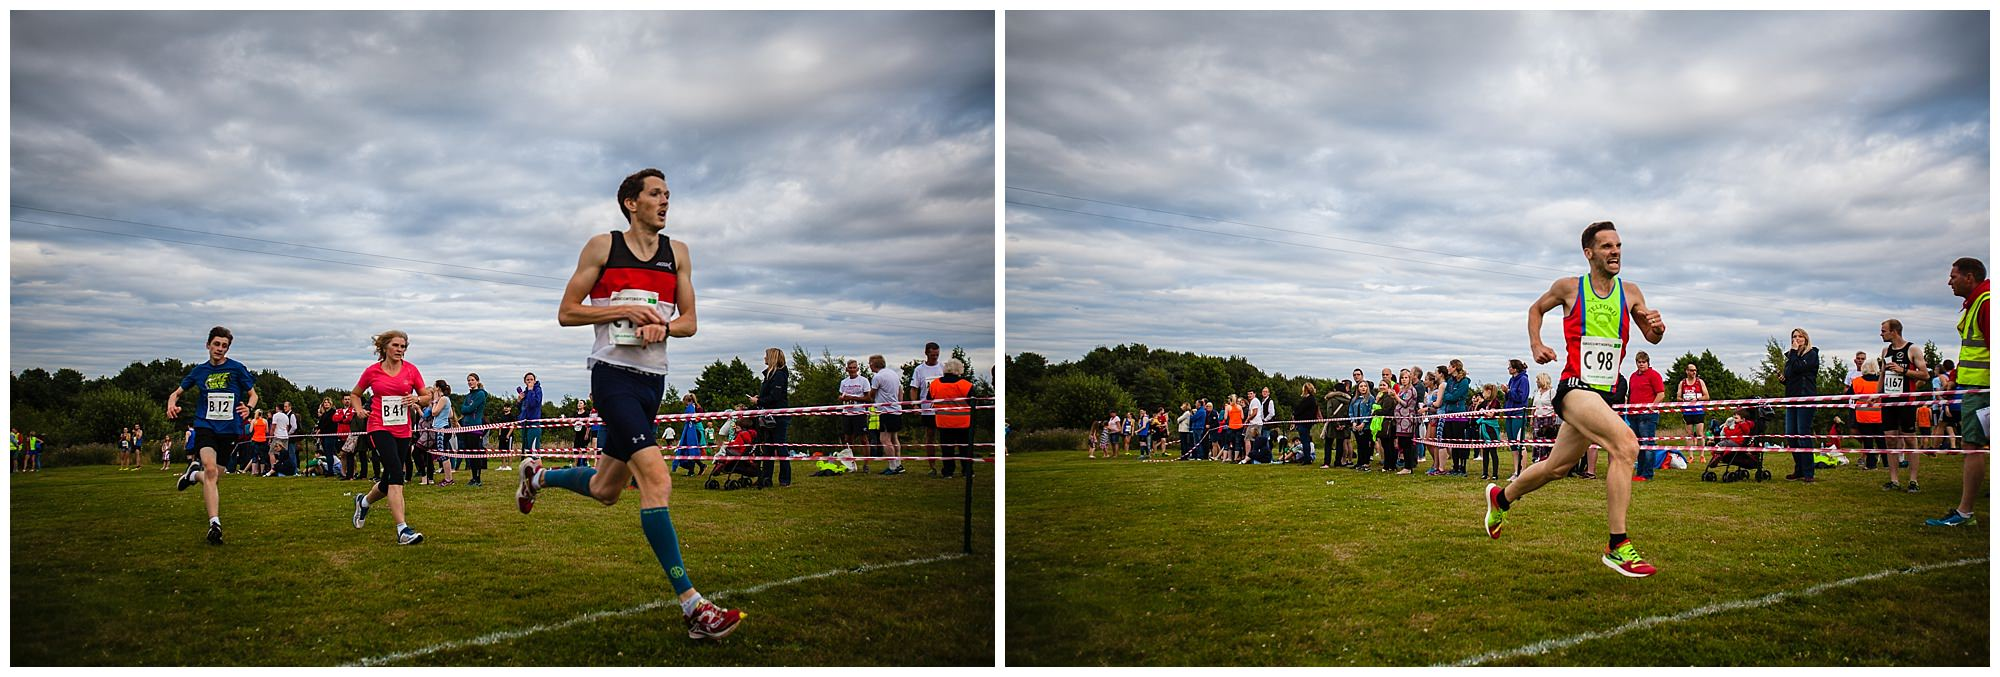 men coming over the finish line at whitchurch whippets running event